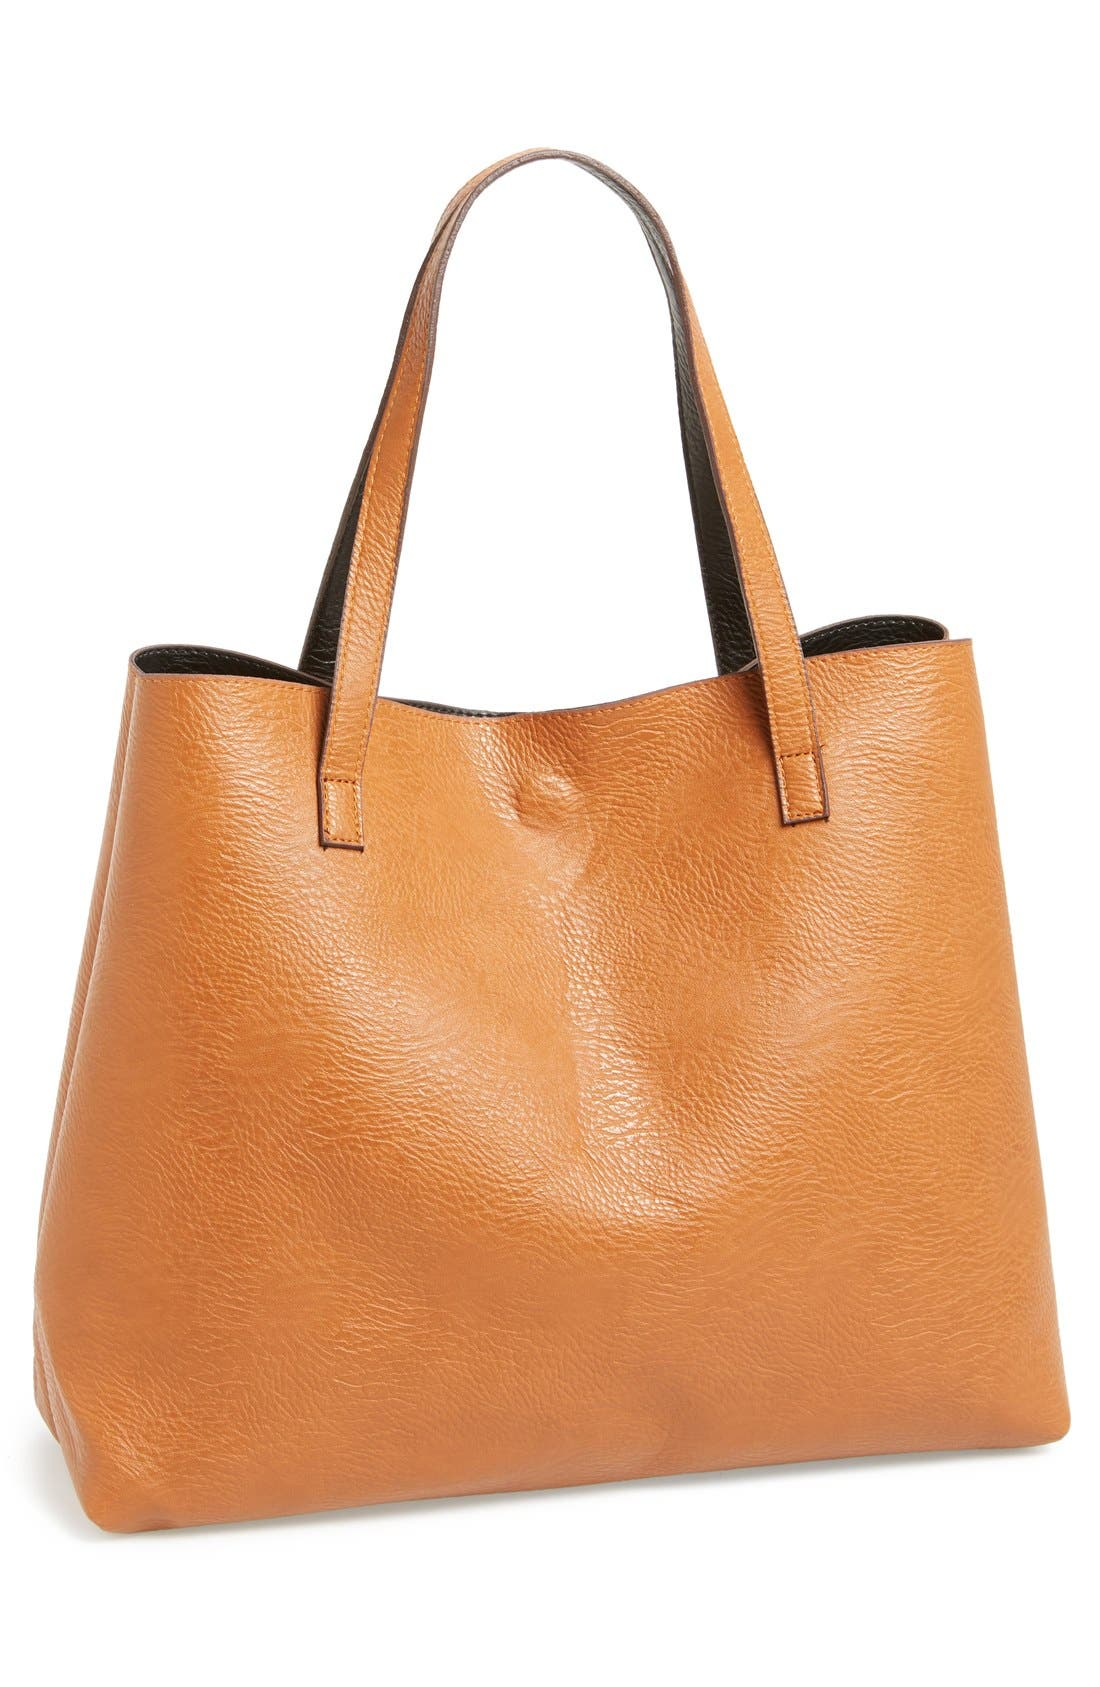 STREET LEVEL,                             Reversible Faux Leather Tote & Wristlet,                             Alternate thumbnail 7, color,                             BLACK/ COGNAC